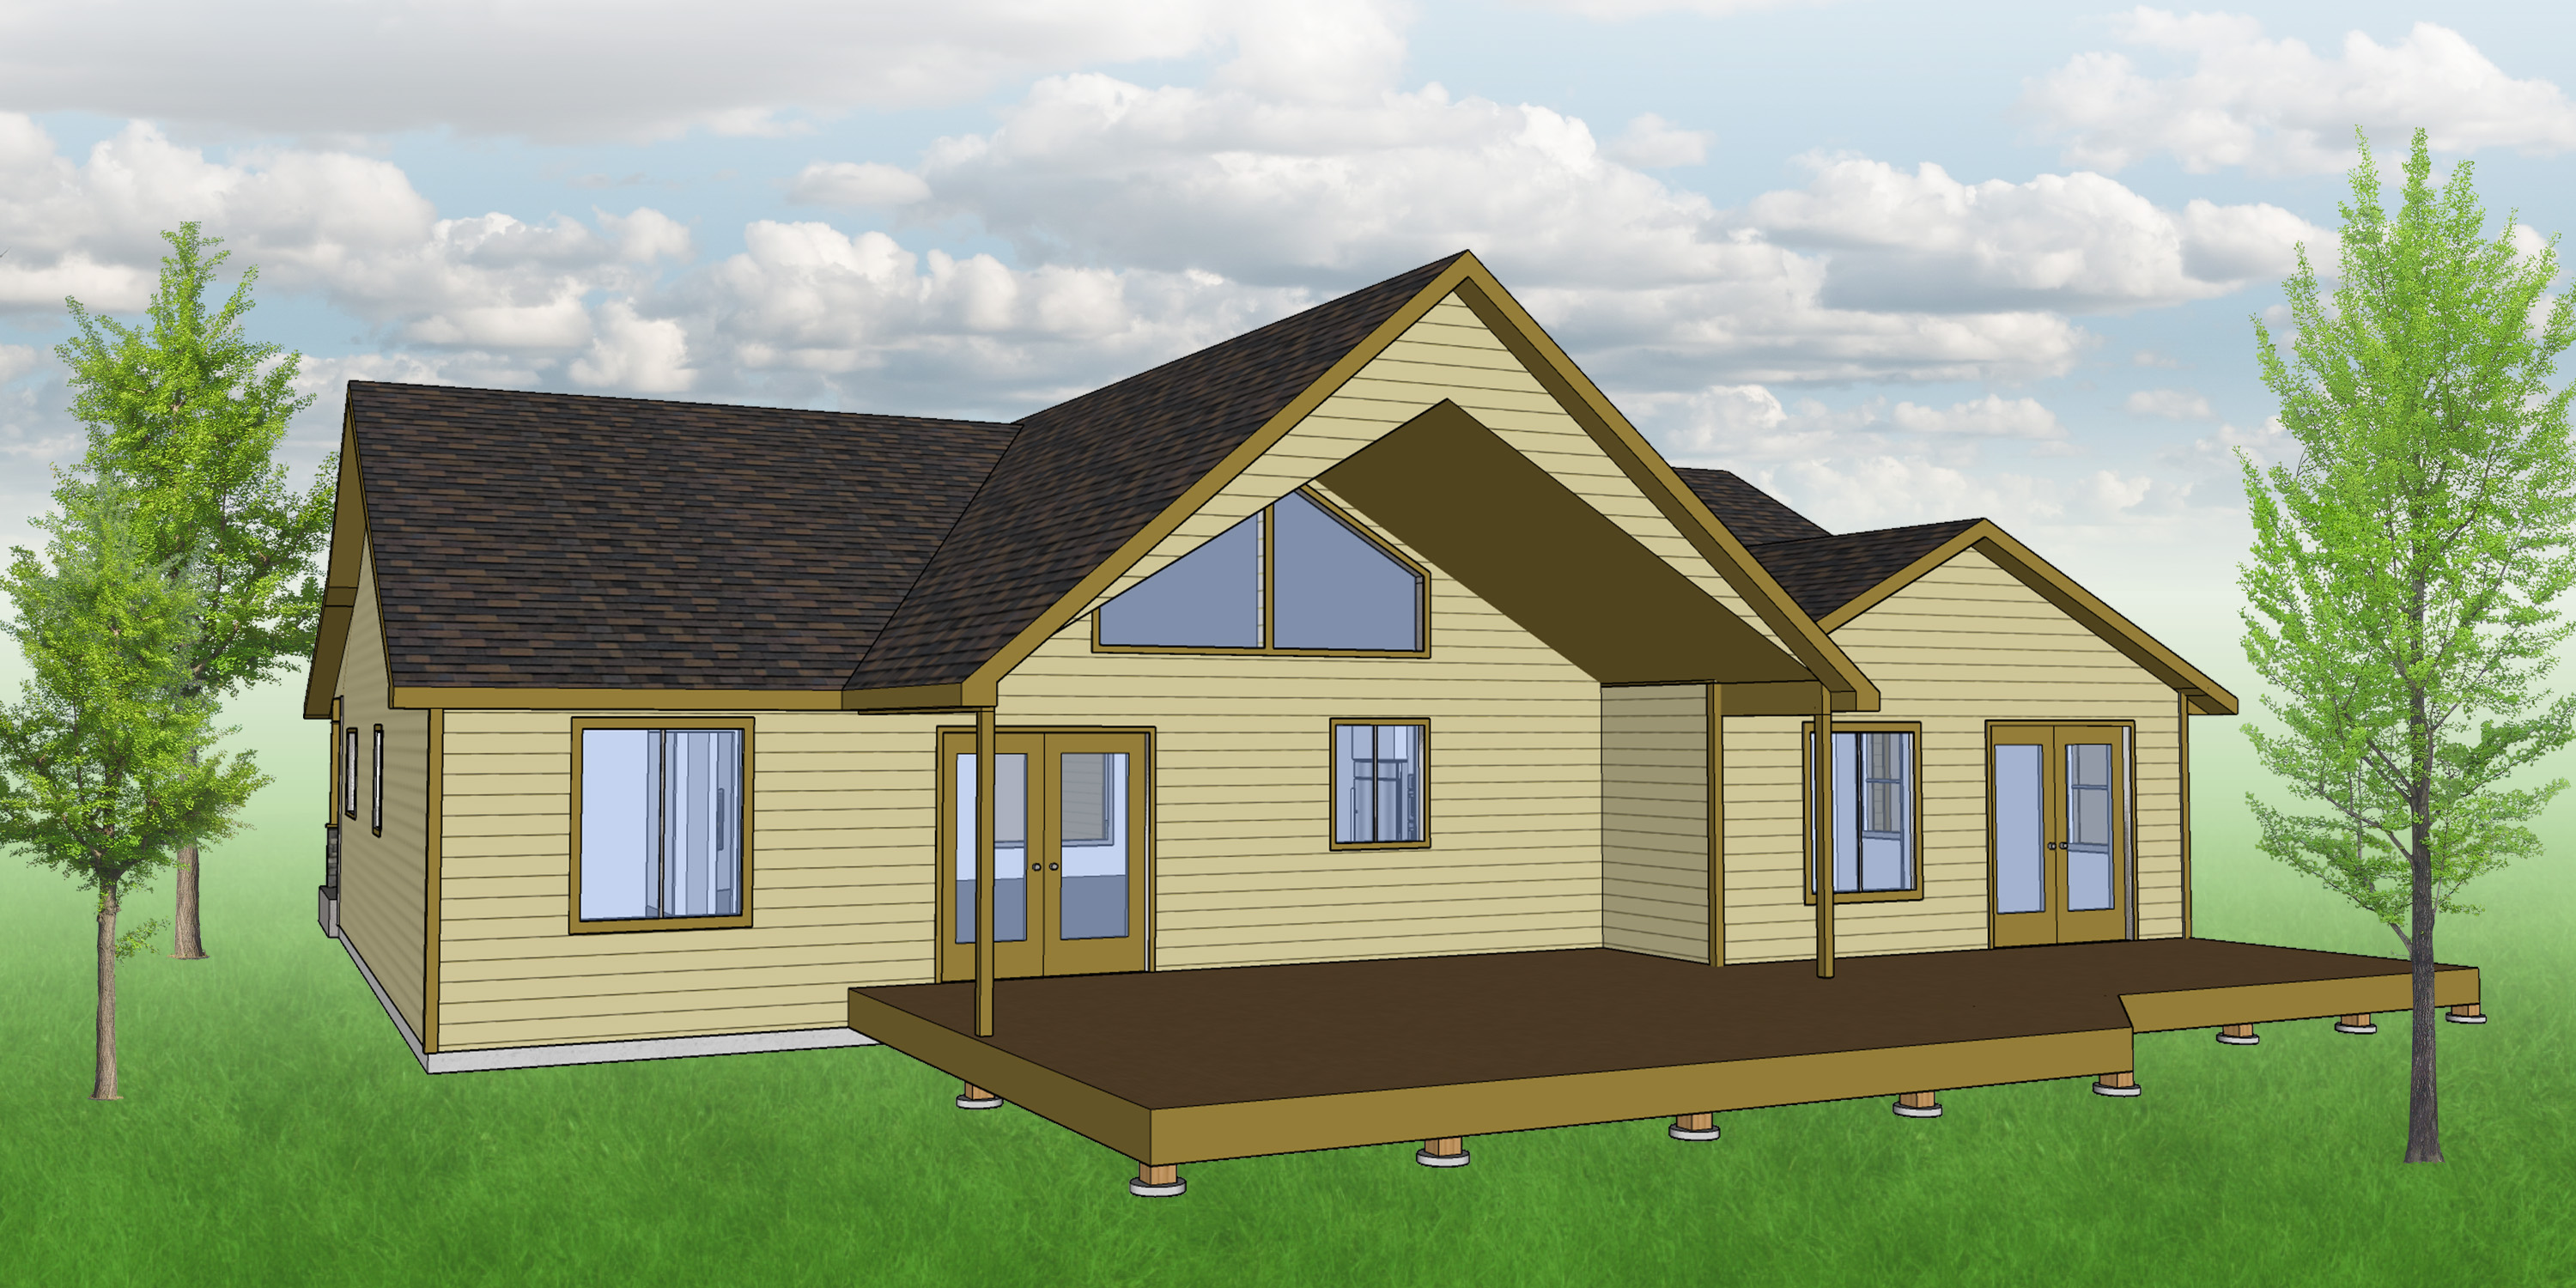 Nesst House Plan - Back